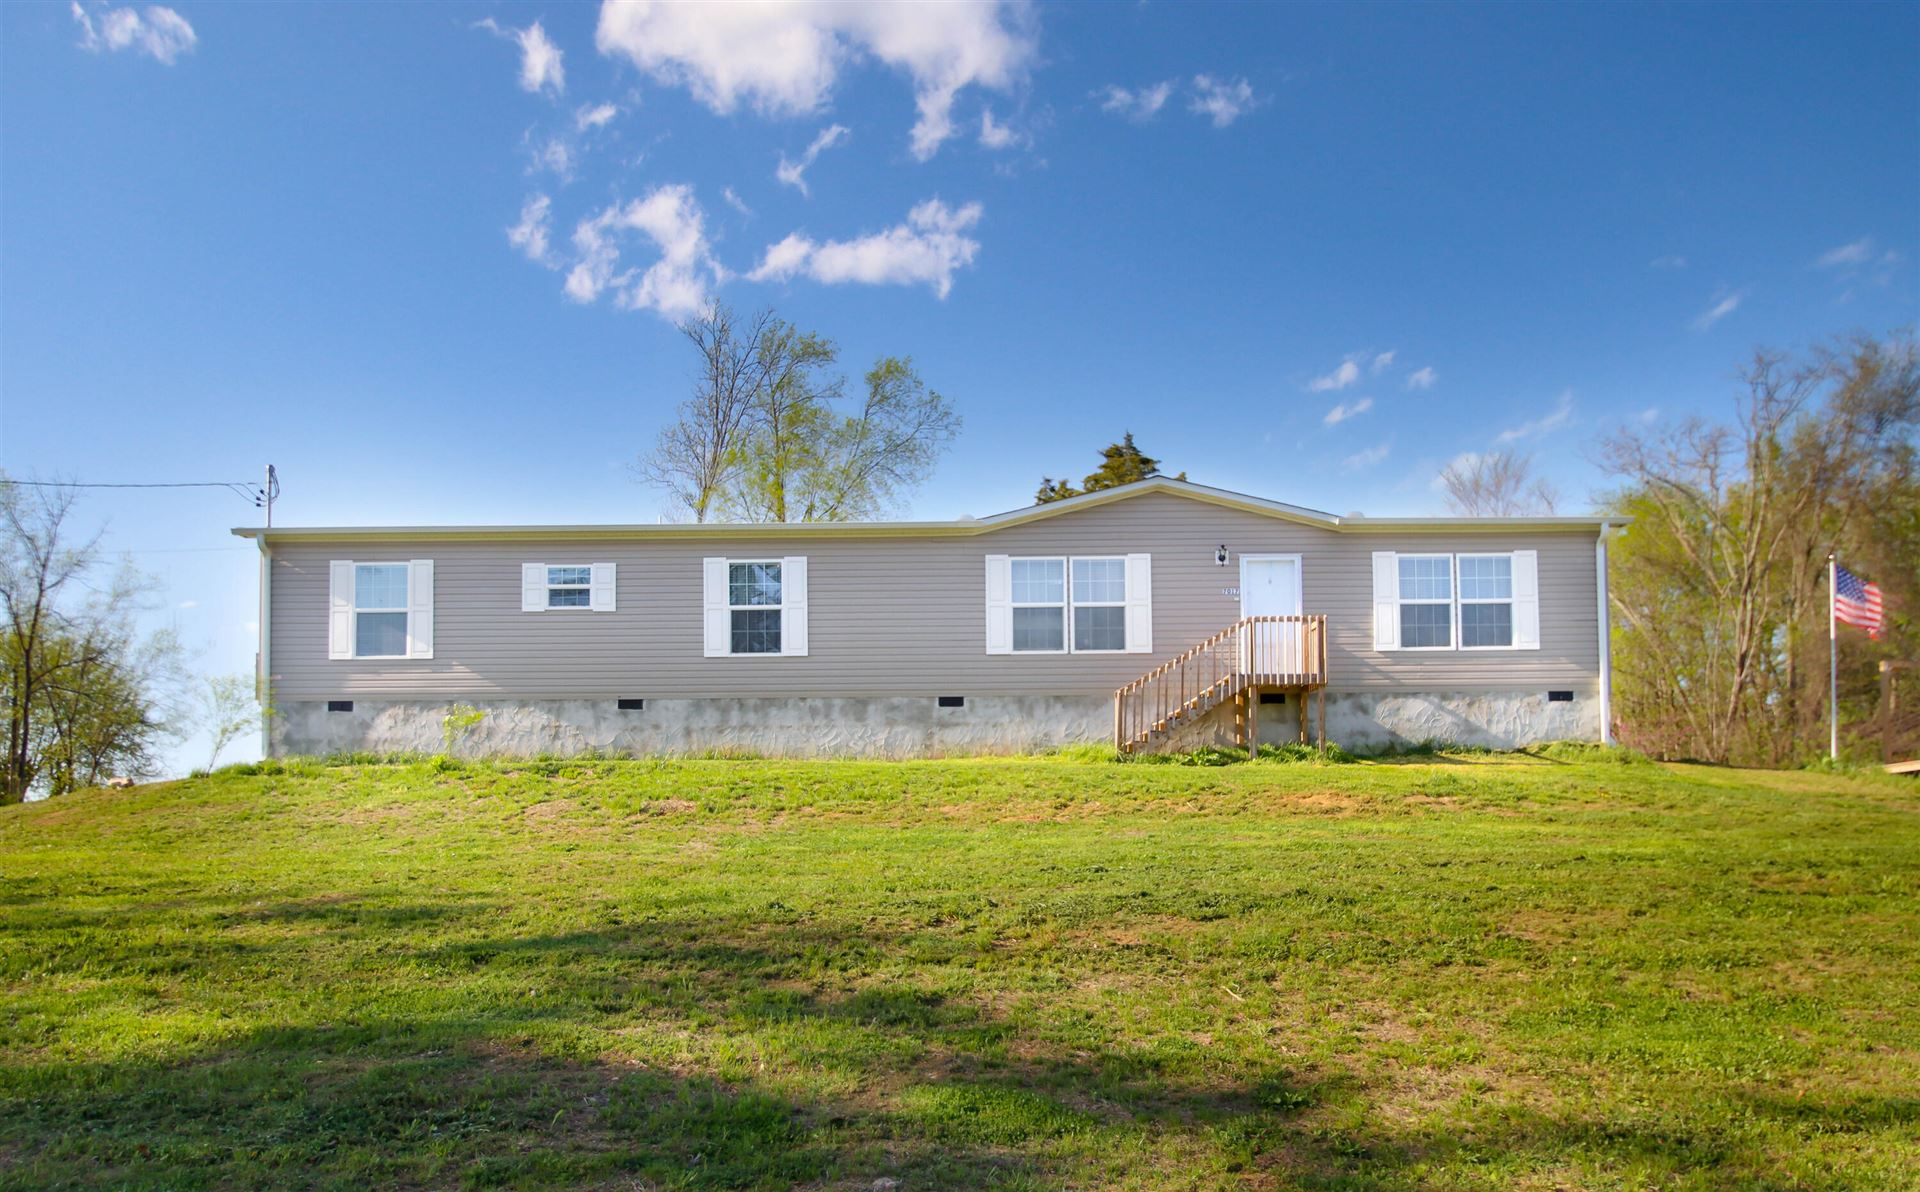 Photo of 7017 N Ruggles Ferry Pike, Knoxville, TN 37924 (MLS # 1149180)